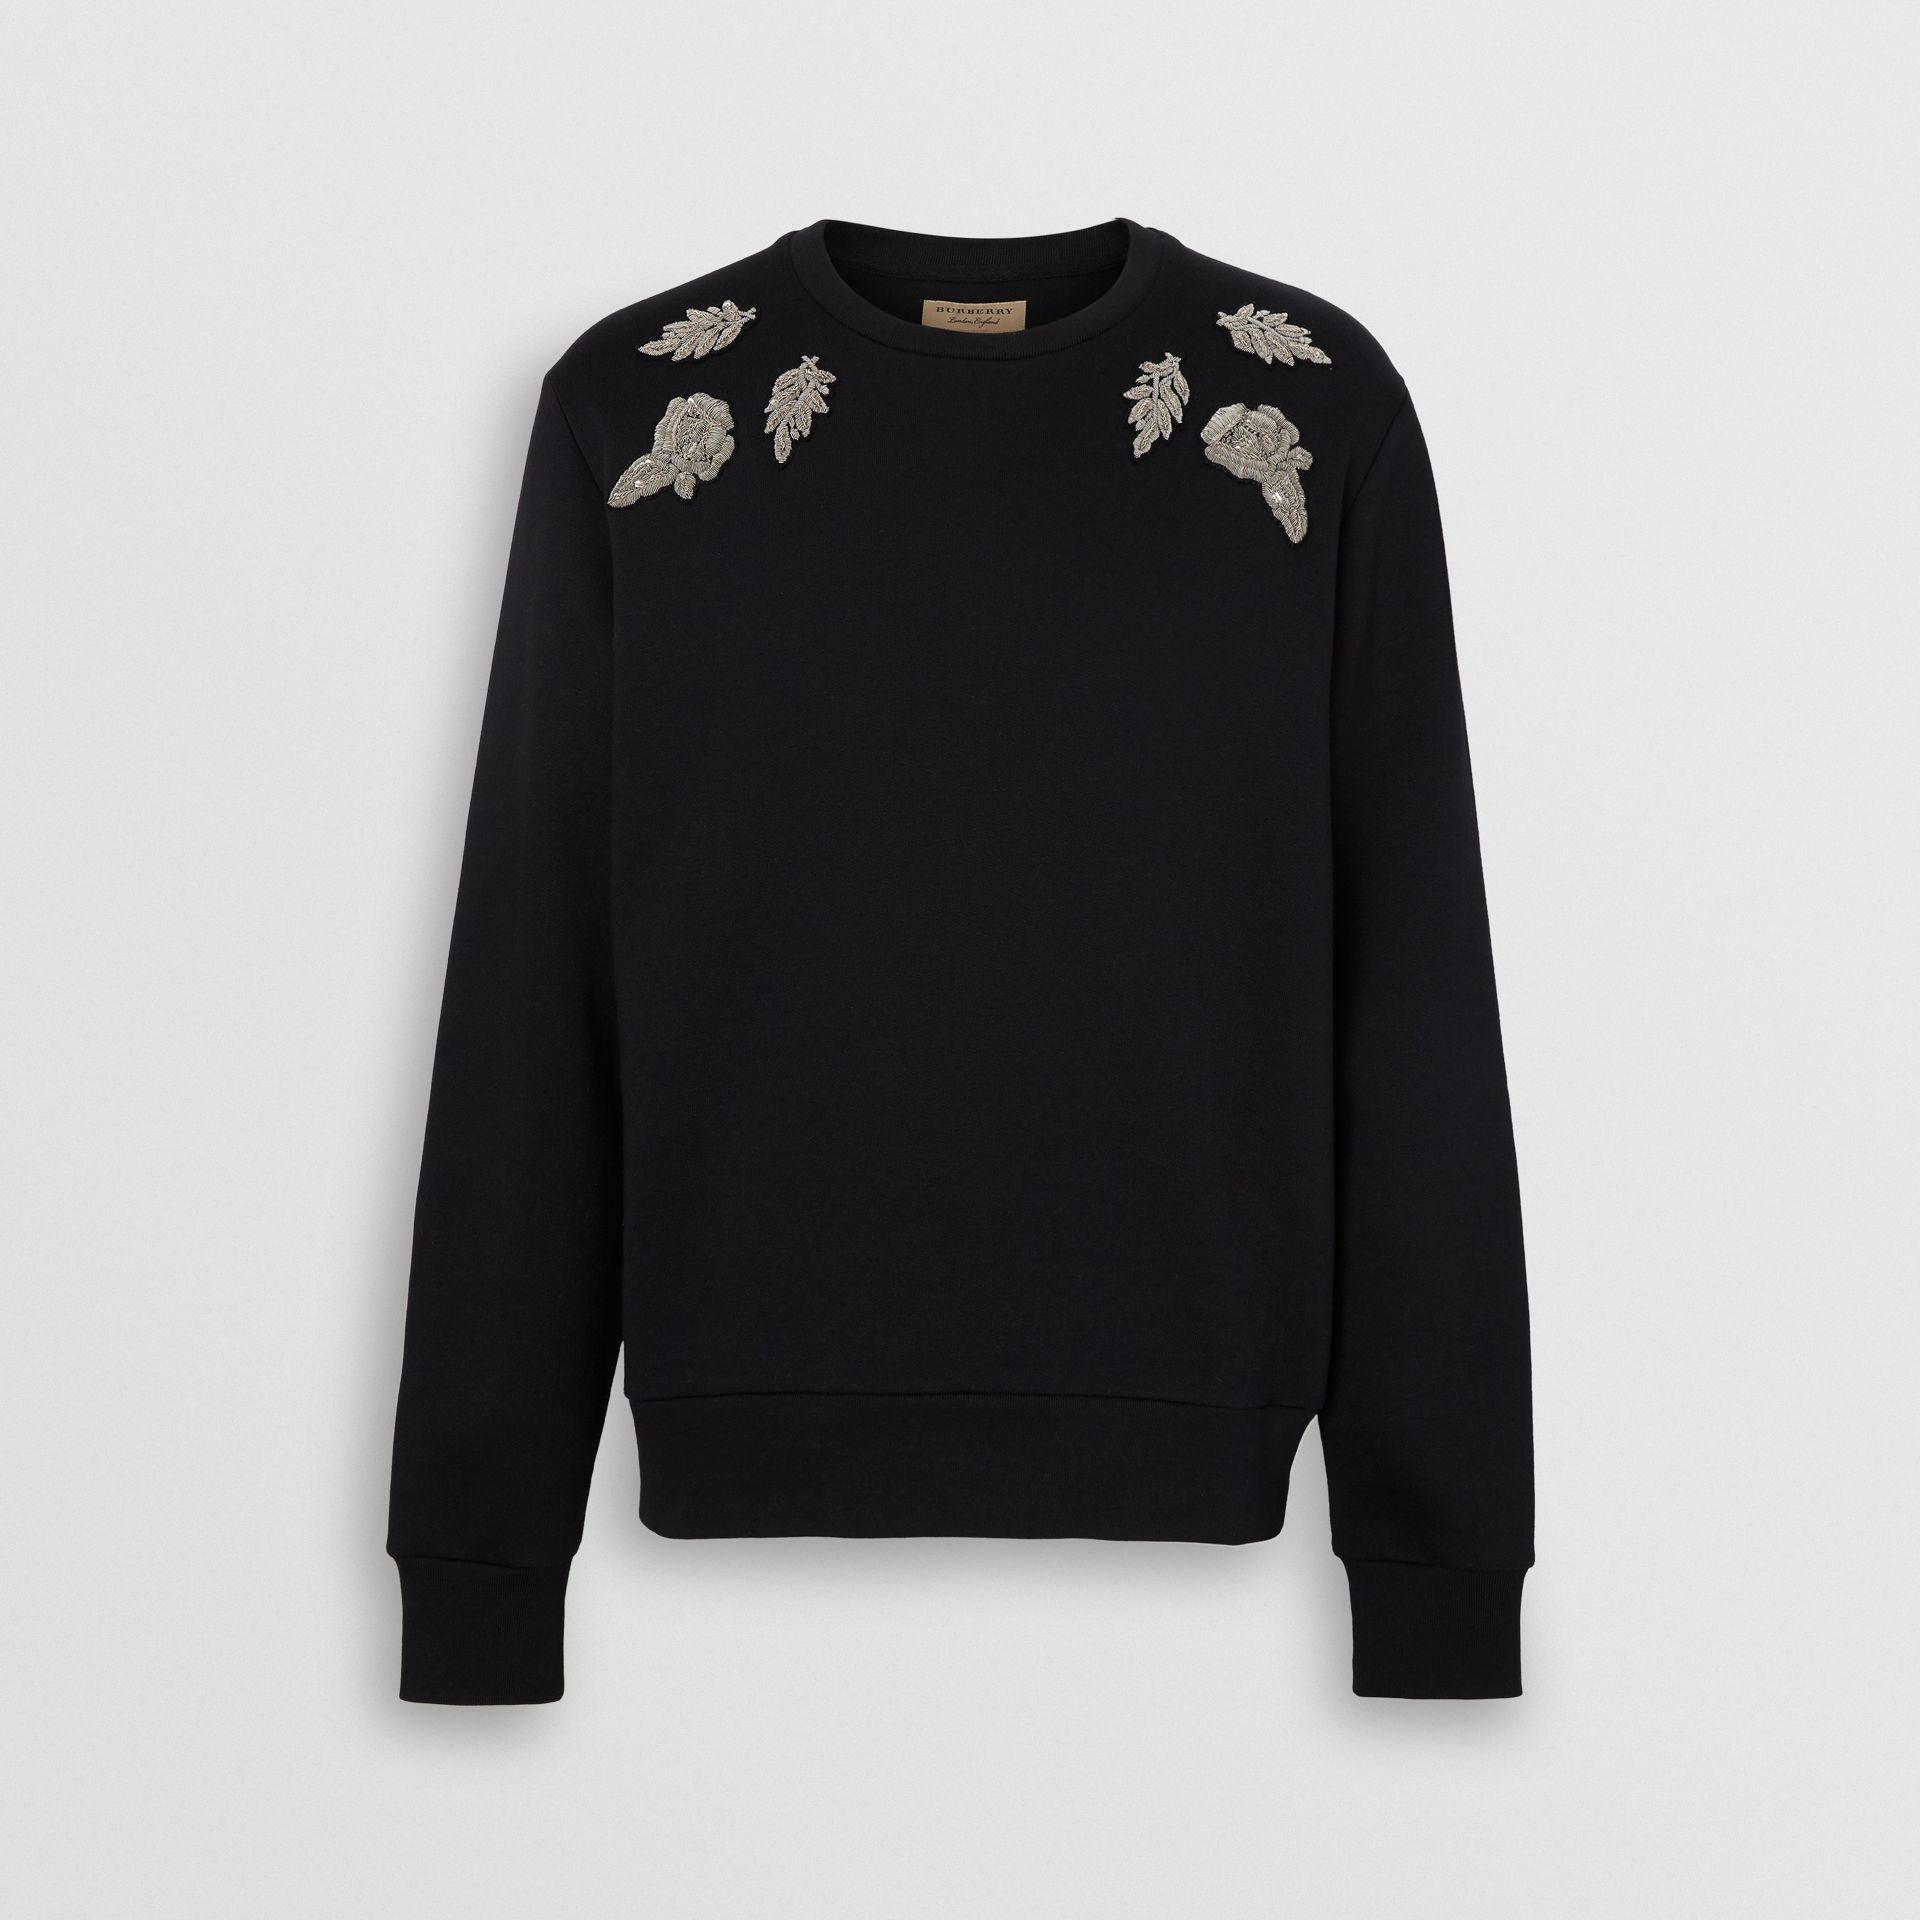 Bullion Floral Cotton Blend Sweatshirt in Black - Men | Burberry Australia - gallery image 3